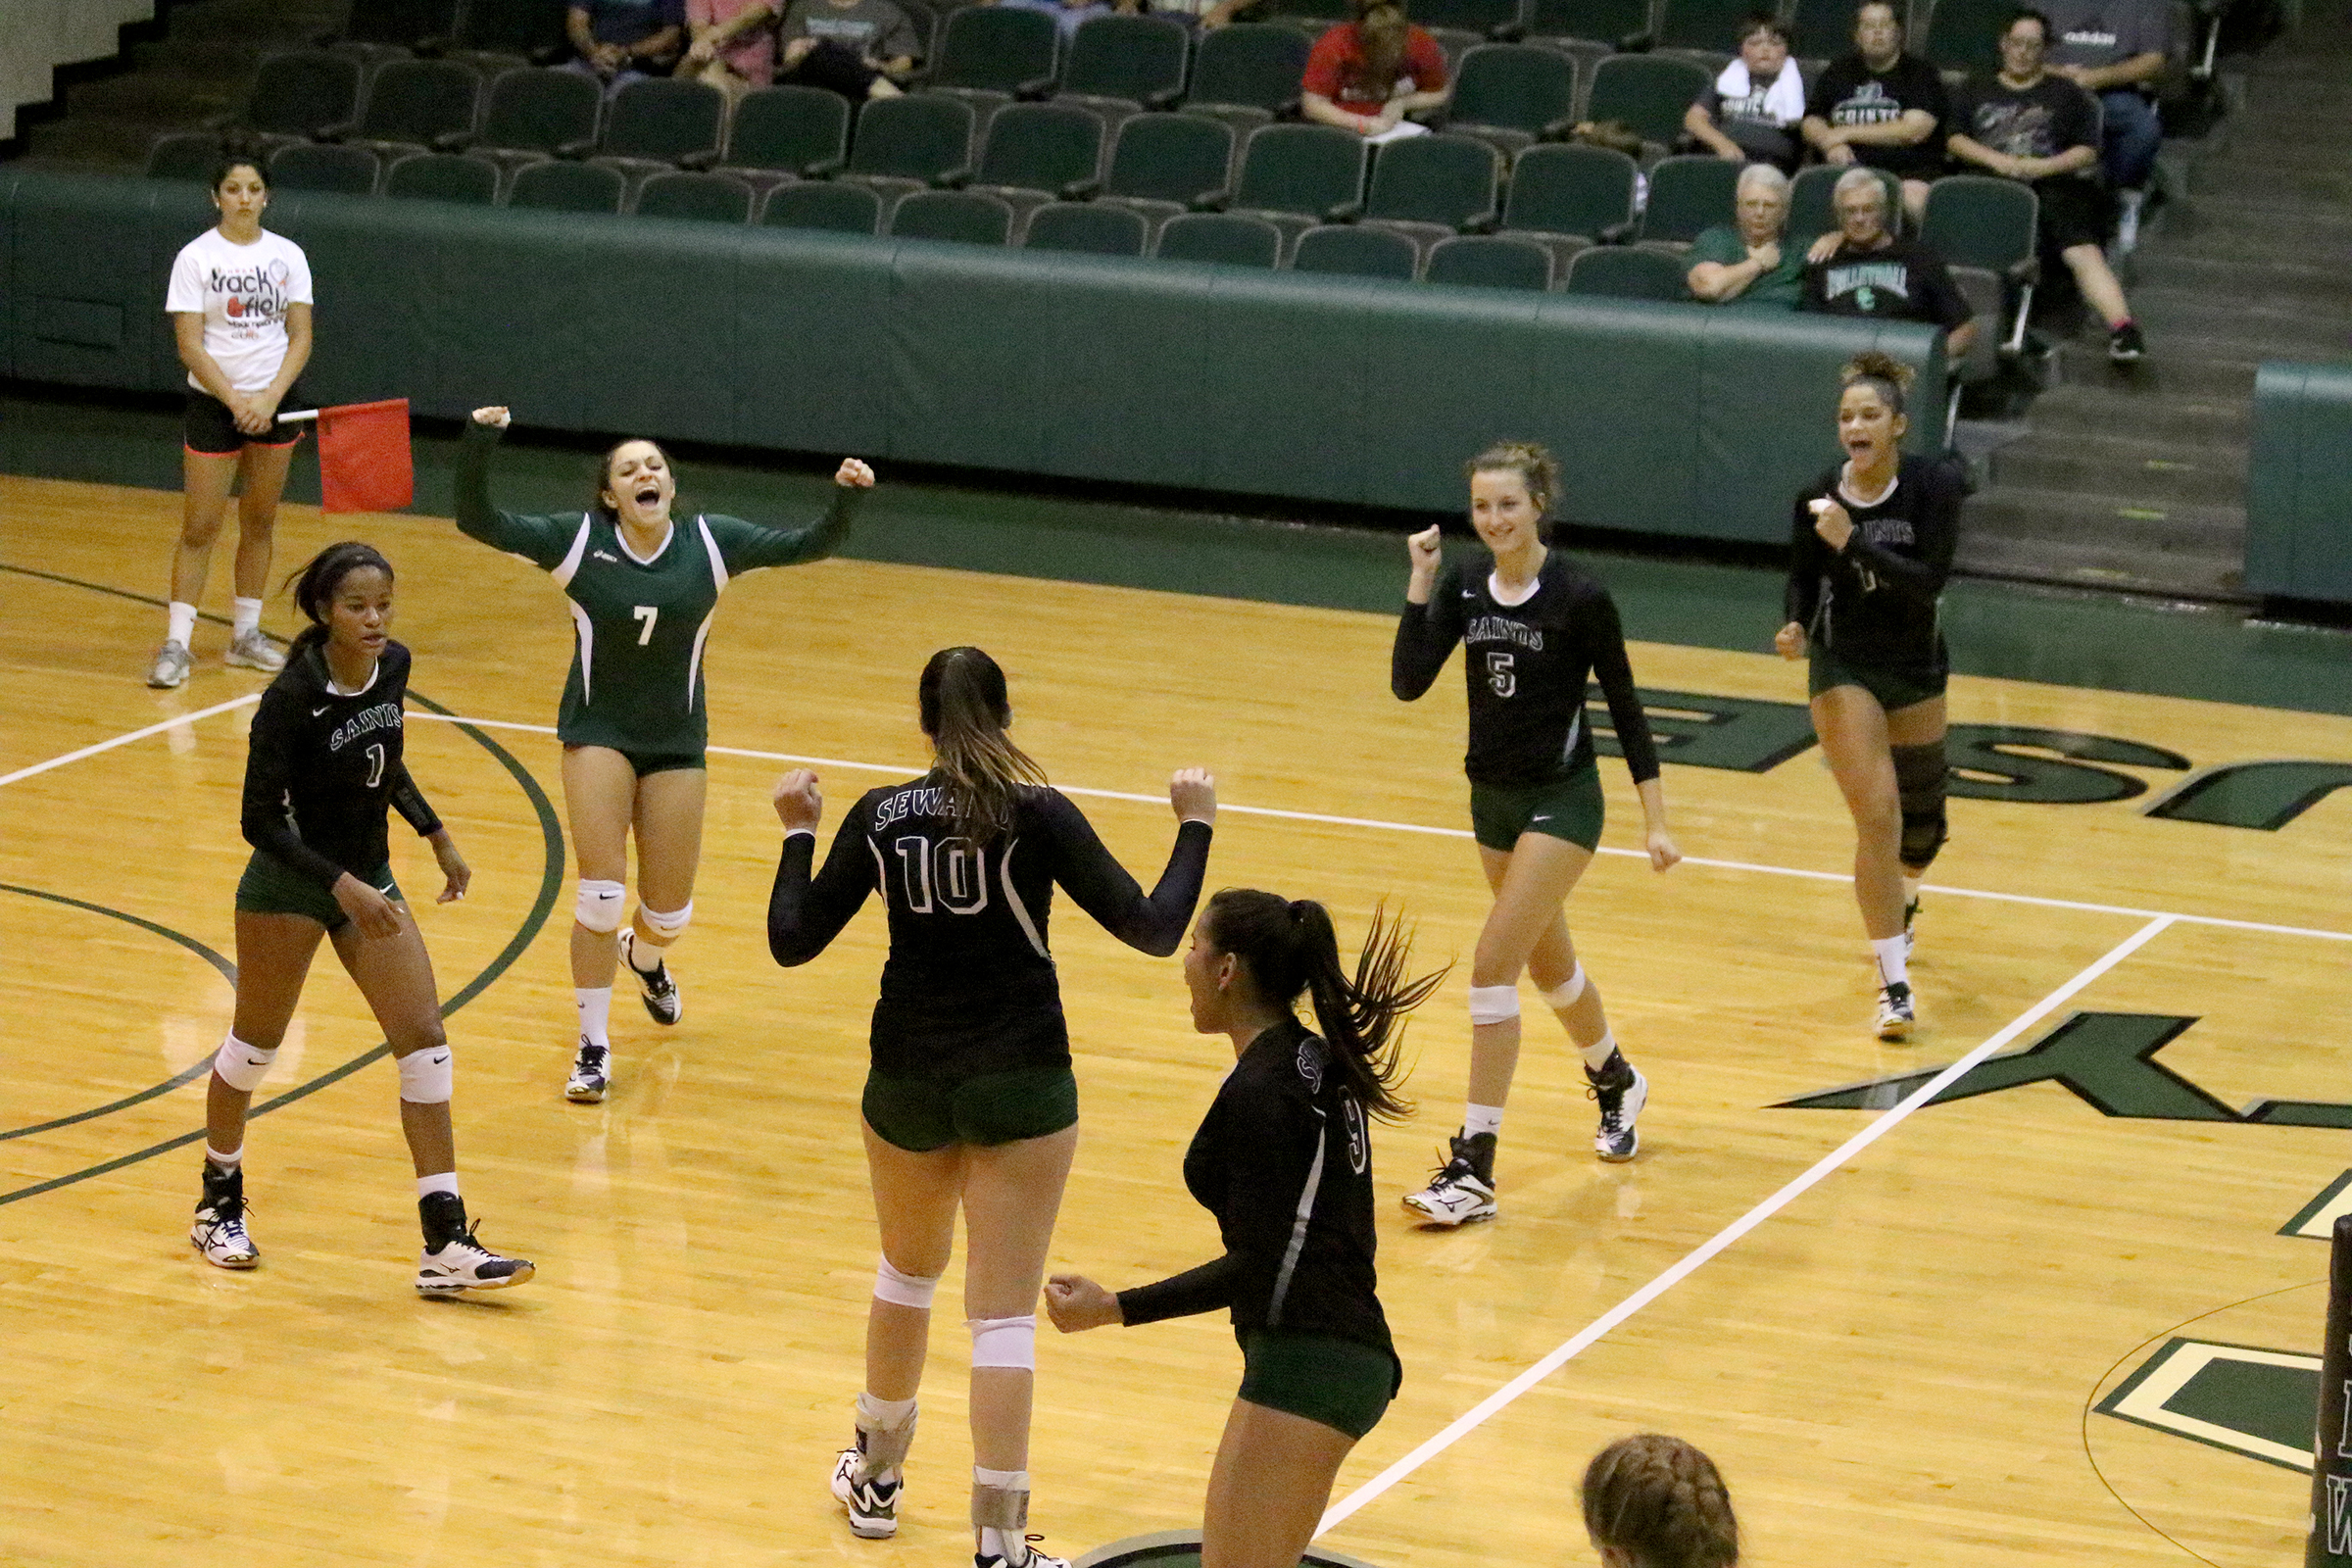 Lady Saints Volleyball Ranked 18th in First National Poll